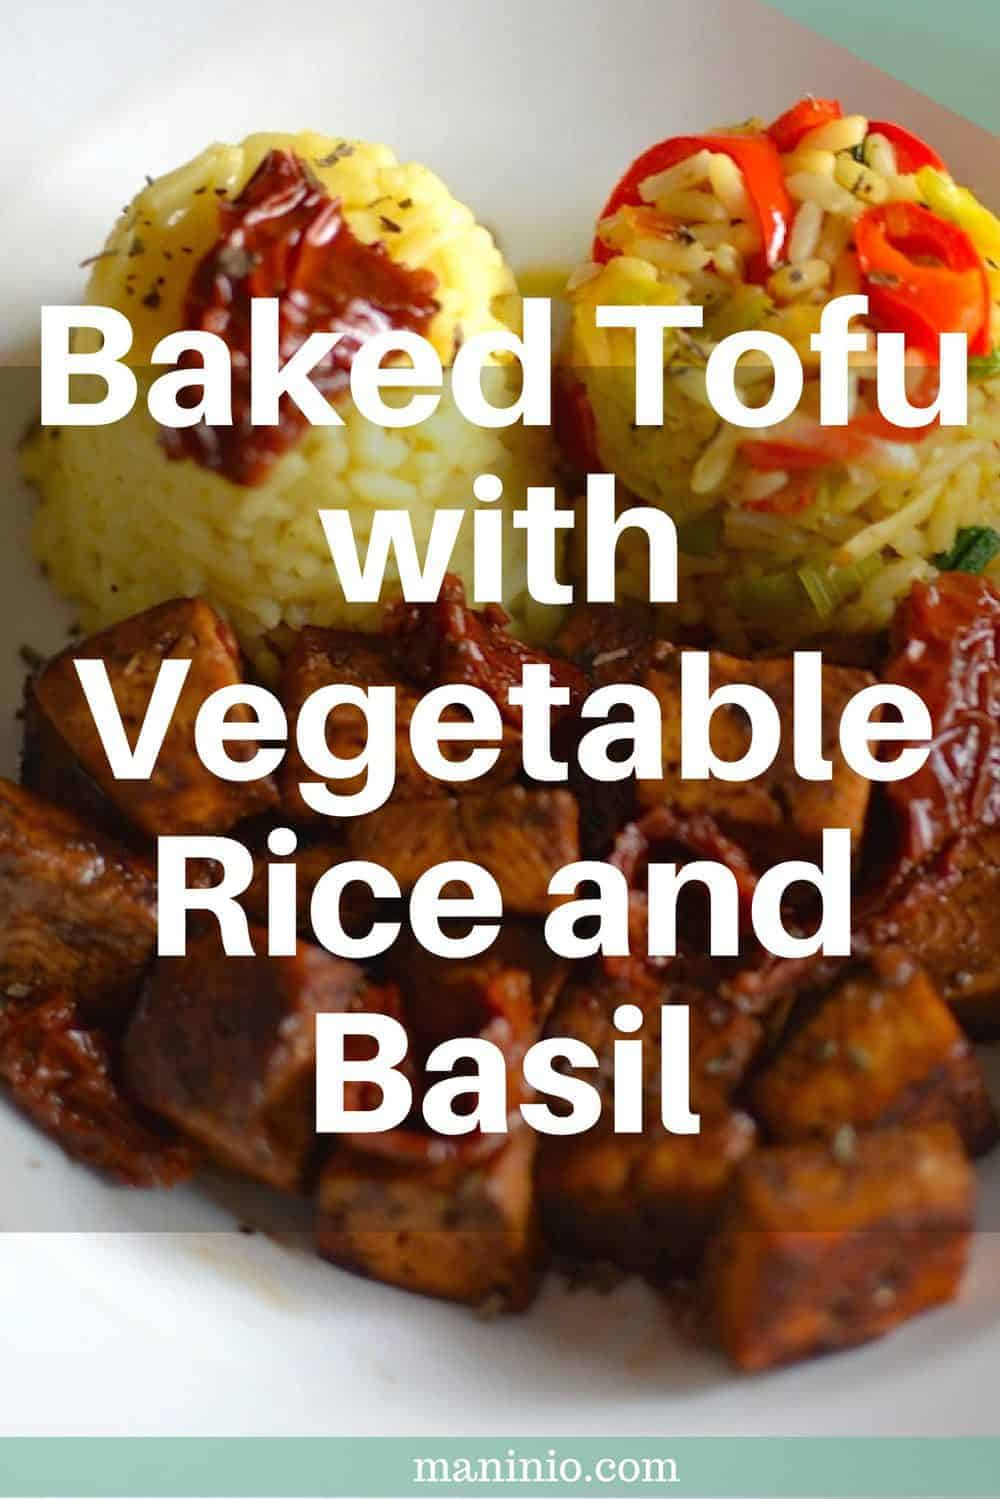 Baked Tofu with Vegetable Rice and Basil. maninio.com #tofuwithvegetables #vegantofu